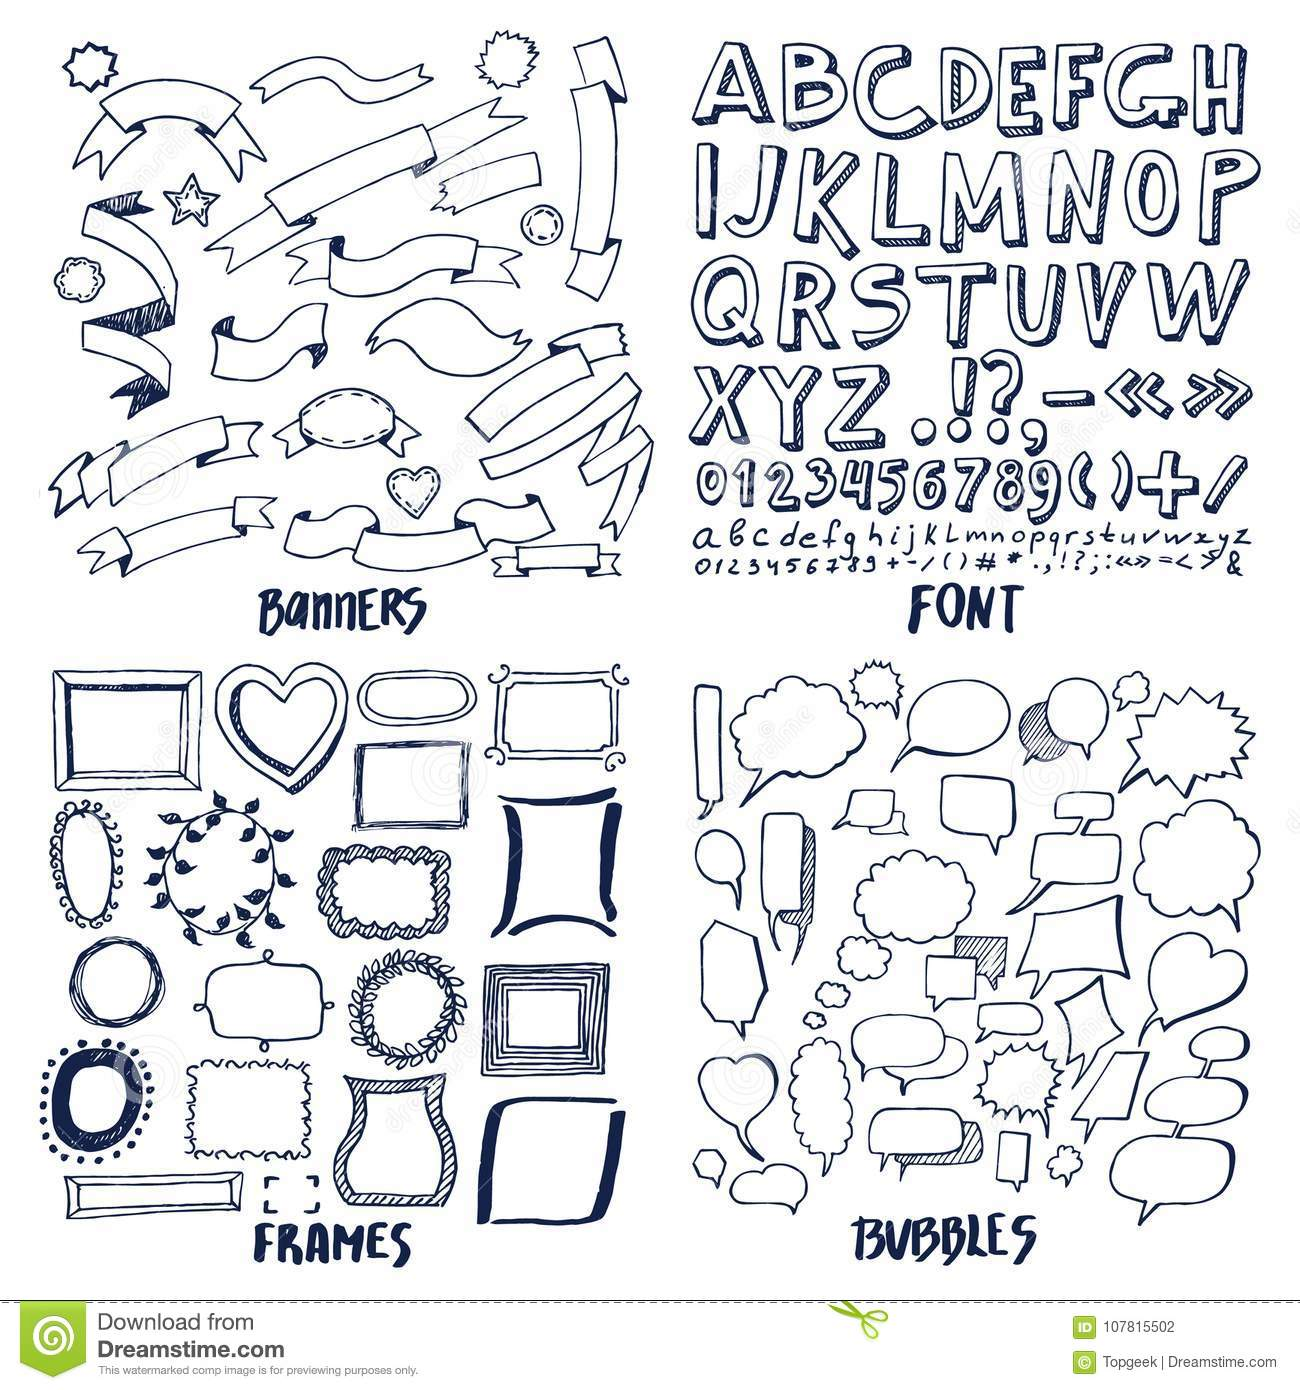 Lot of patterns of font banners frames and bubbles stock vector download lot of patterns of font banners frames and bubbles stock vector illustration of calligraphy spiritdancerdesigns Image collections